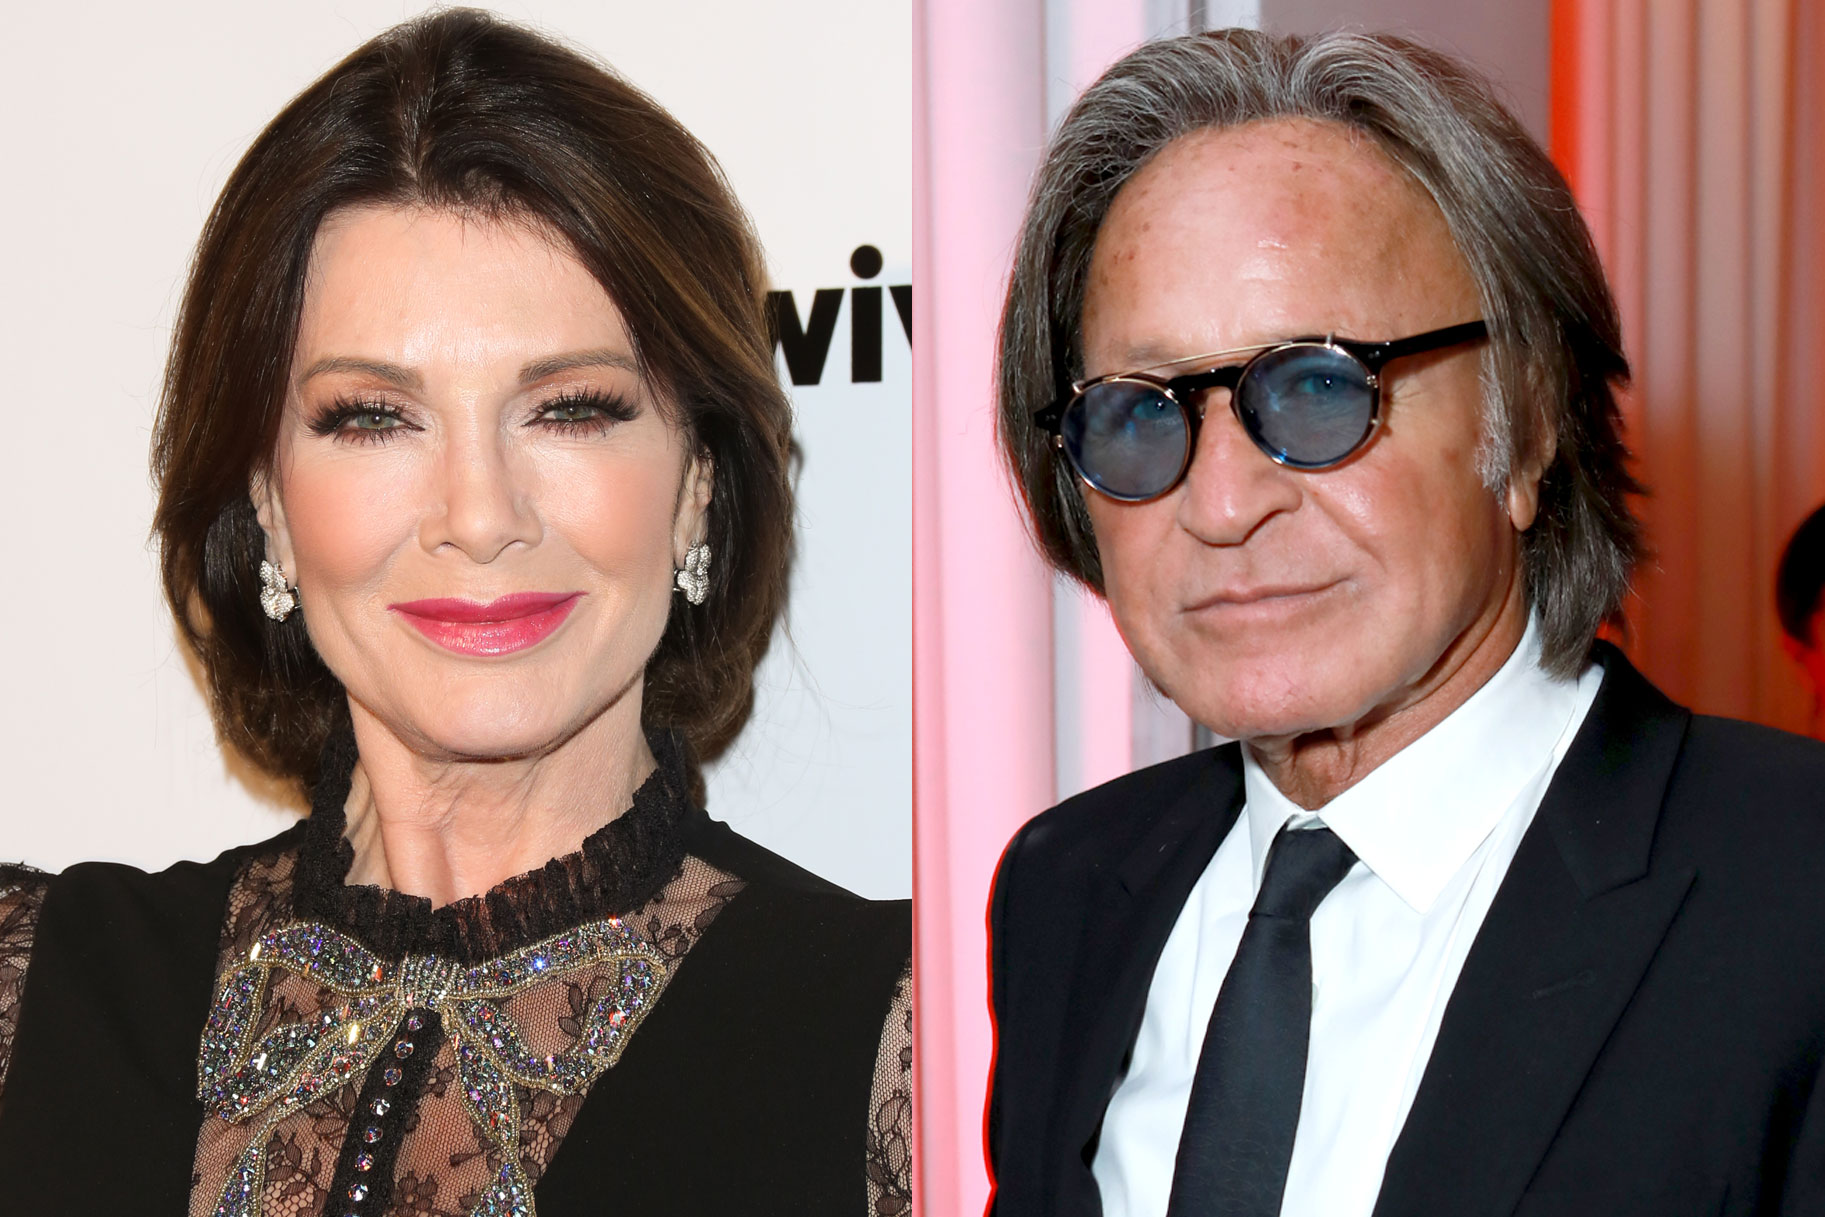 lisa-vanderpump-mohamed-hadid